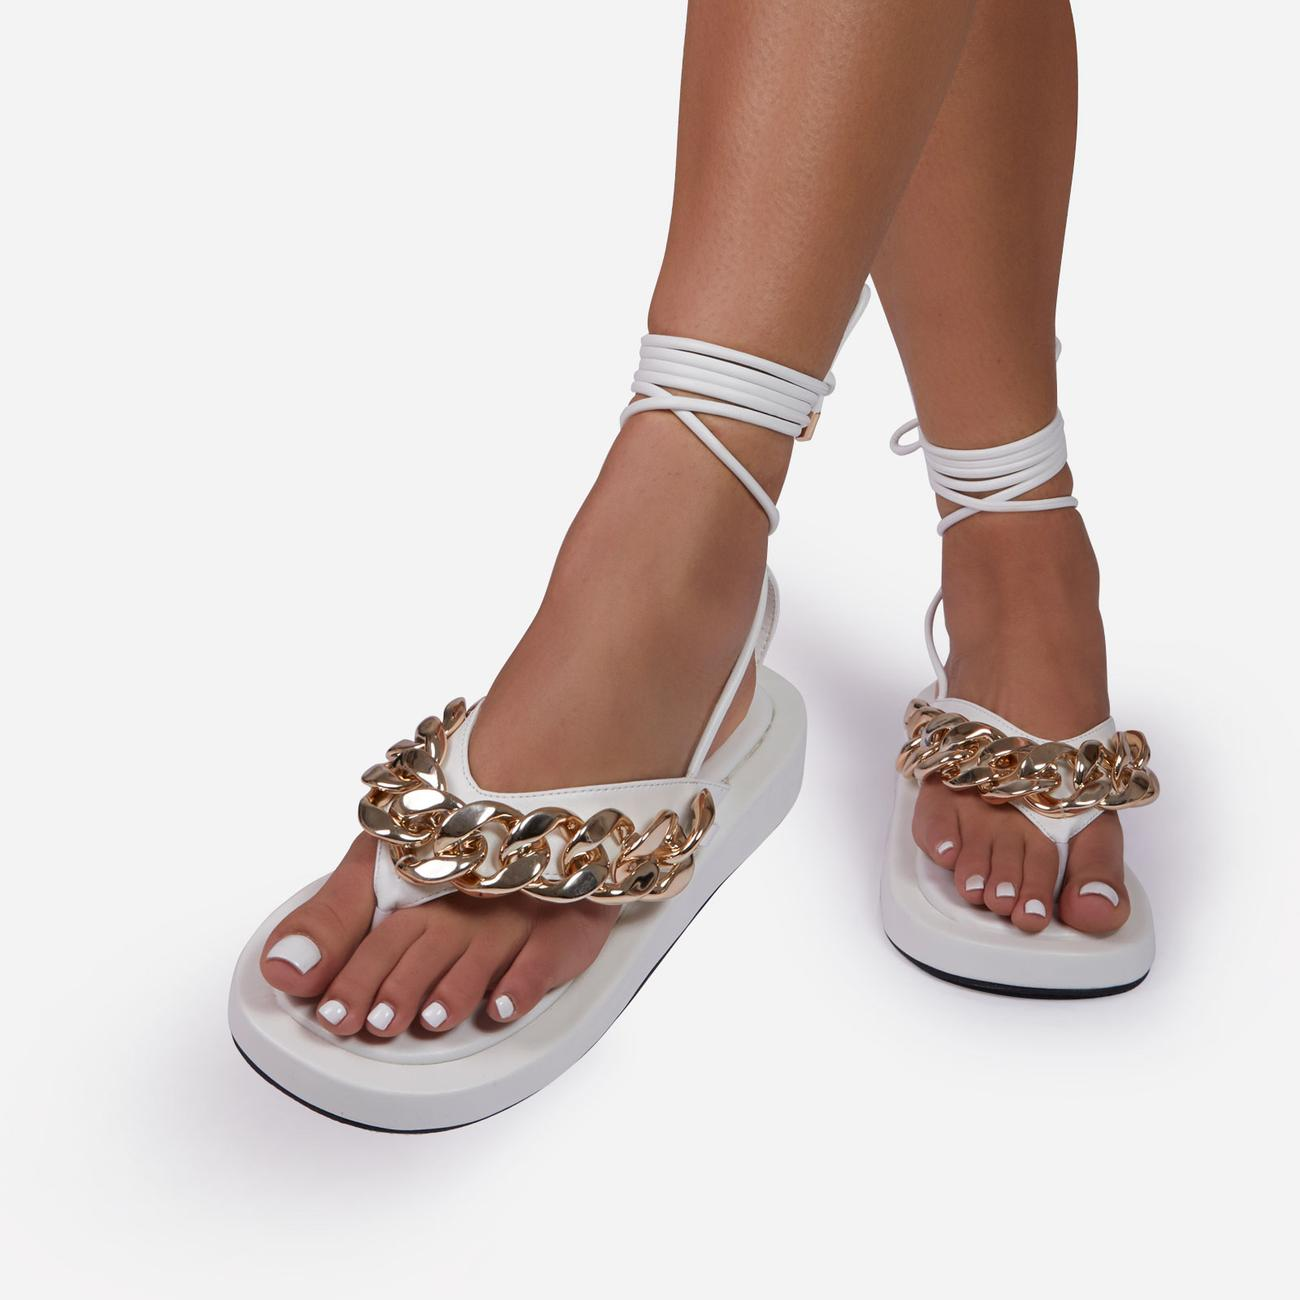 Hidden-Gems Chain Thong Detail Lace Up Platform Gladiator Sandal In White Faux Leather Image 4